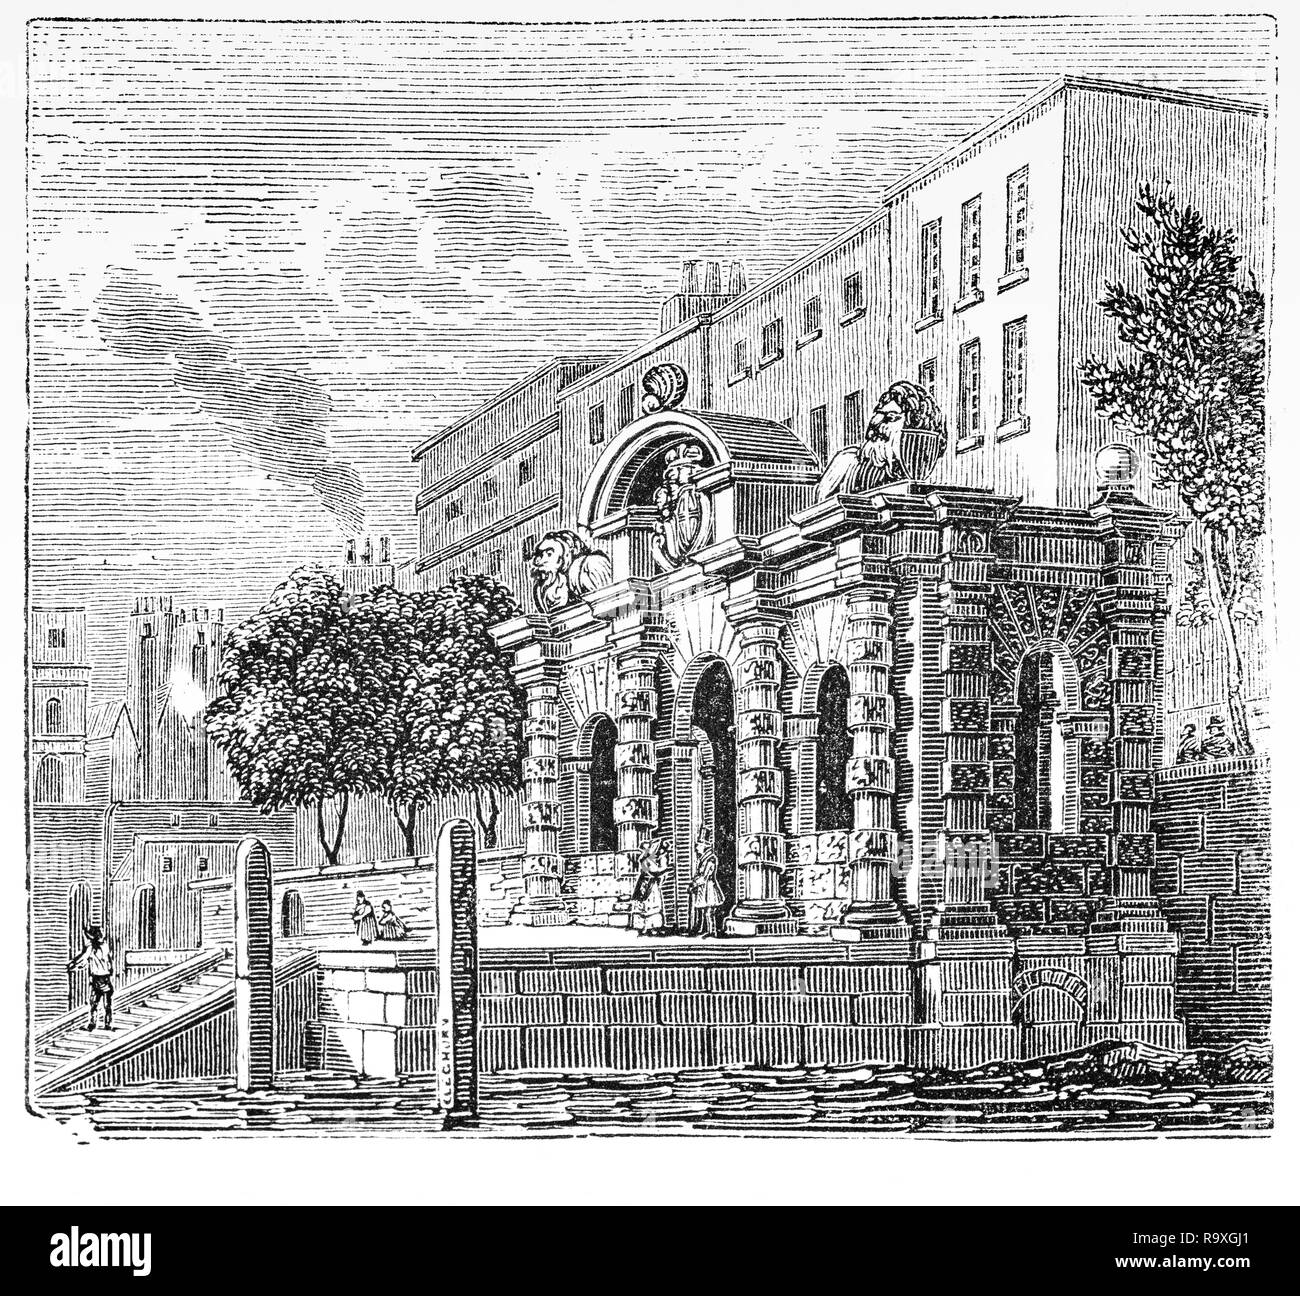 The Water-Gate entrance to York House (formerly Norwich Place or Norwich Palace) was one of a string of mansion houses which formerly stood on the Strand, the principal route from the City of London to the Palace of Westminster. In the 1620s it was acquired by the royal favourite George Villiers, 1st Duke of Buckingham, and after an interlude during the English Civil War it was returned to George Villiers, 2nd Duke of Buckingham, who sold it to developers in 1672. - Stock Image